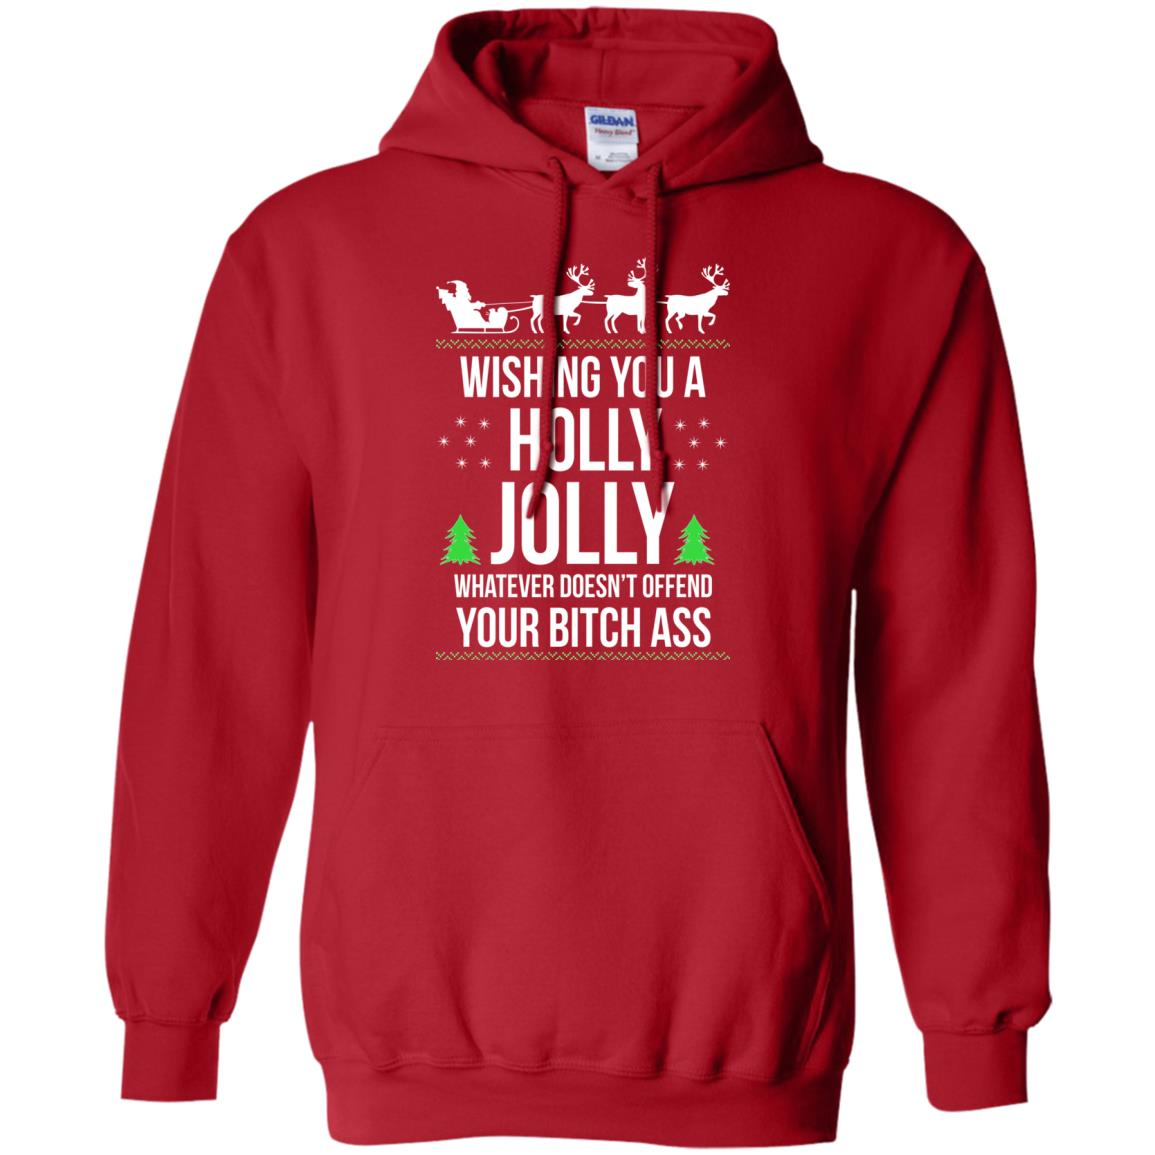 image 1187 - Wishing you a holly jolly whatever doesn't offend your bitch ass sweater, shirt